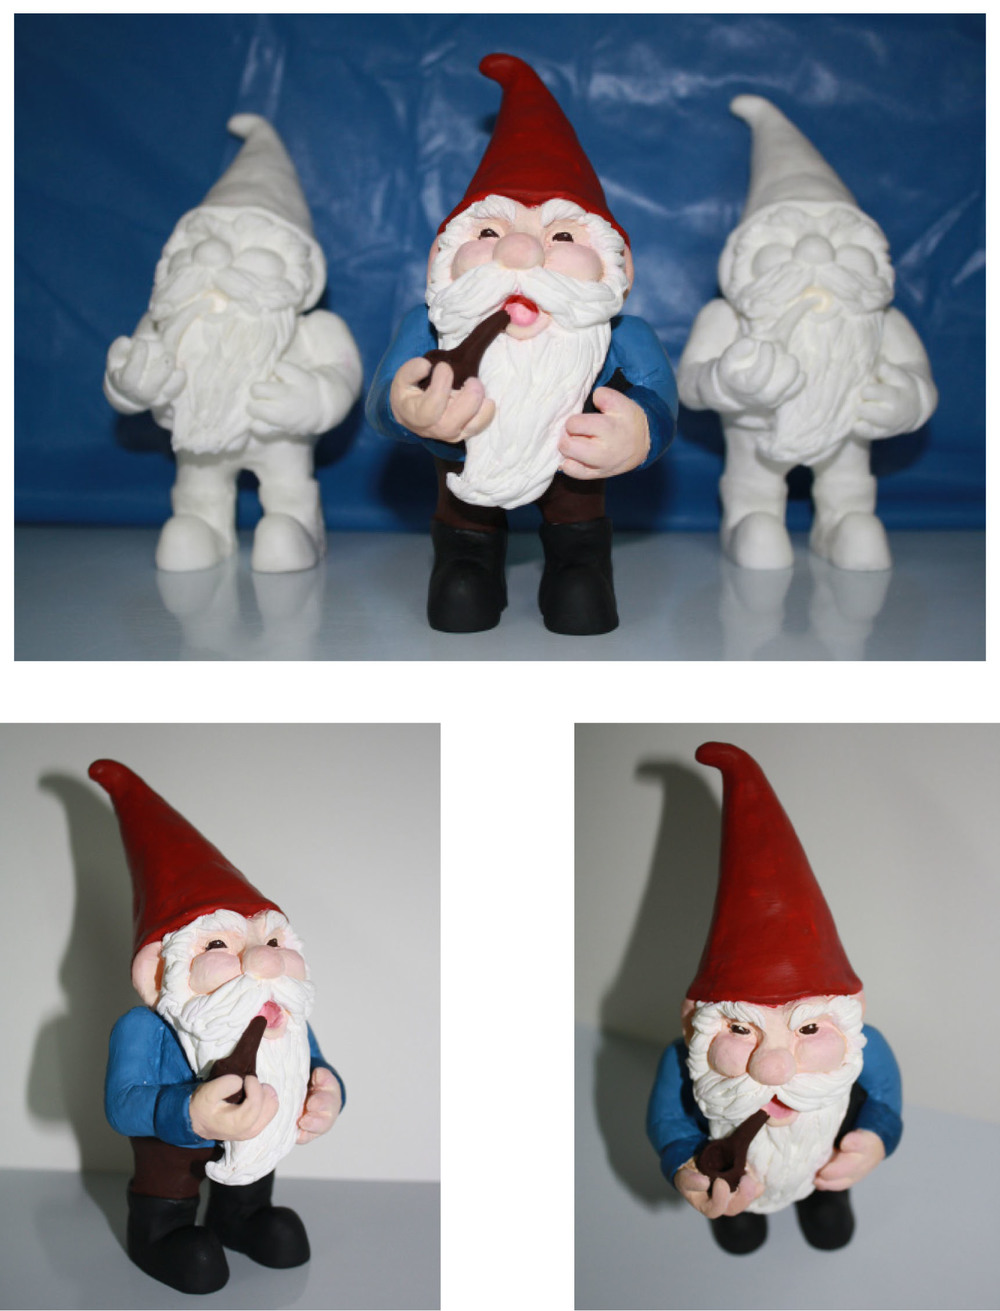 Zippah the Gnome